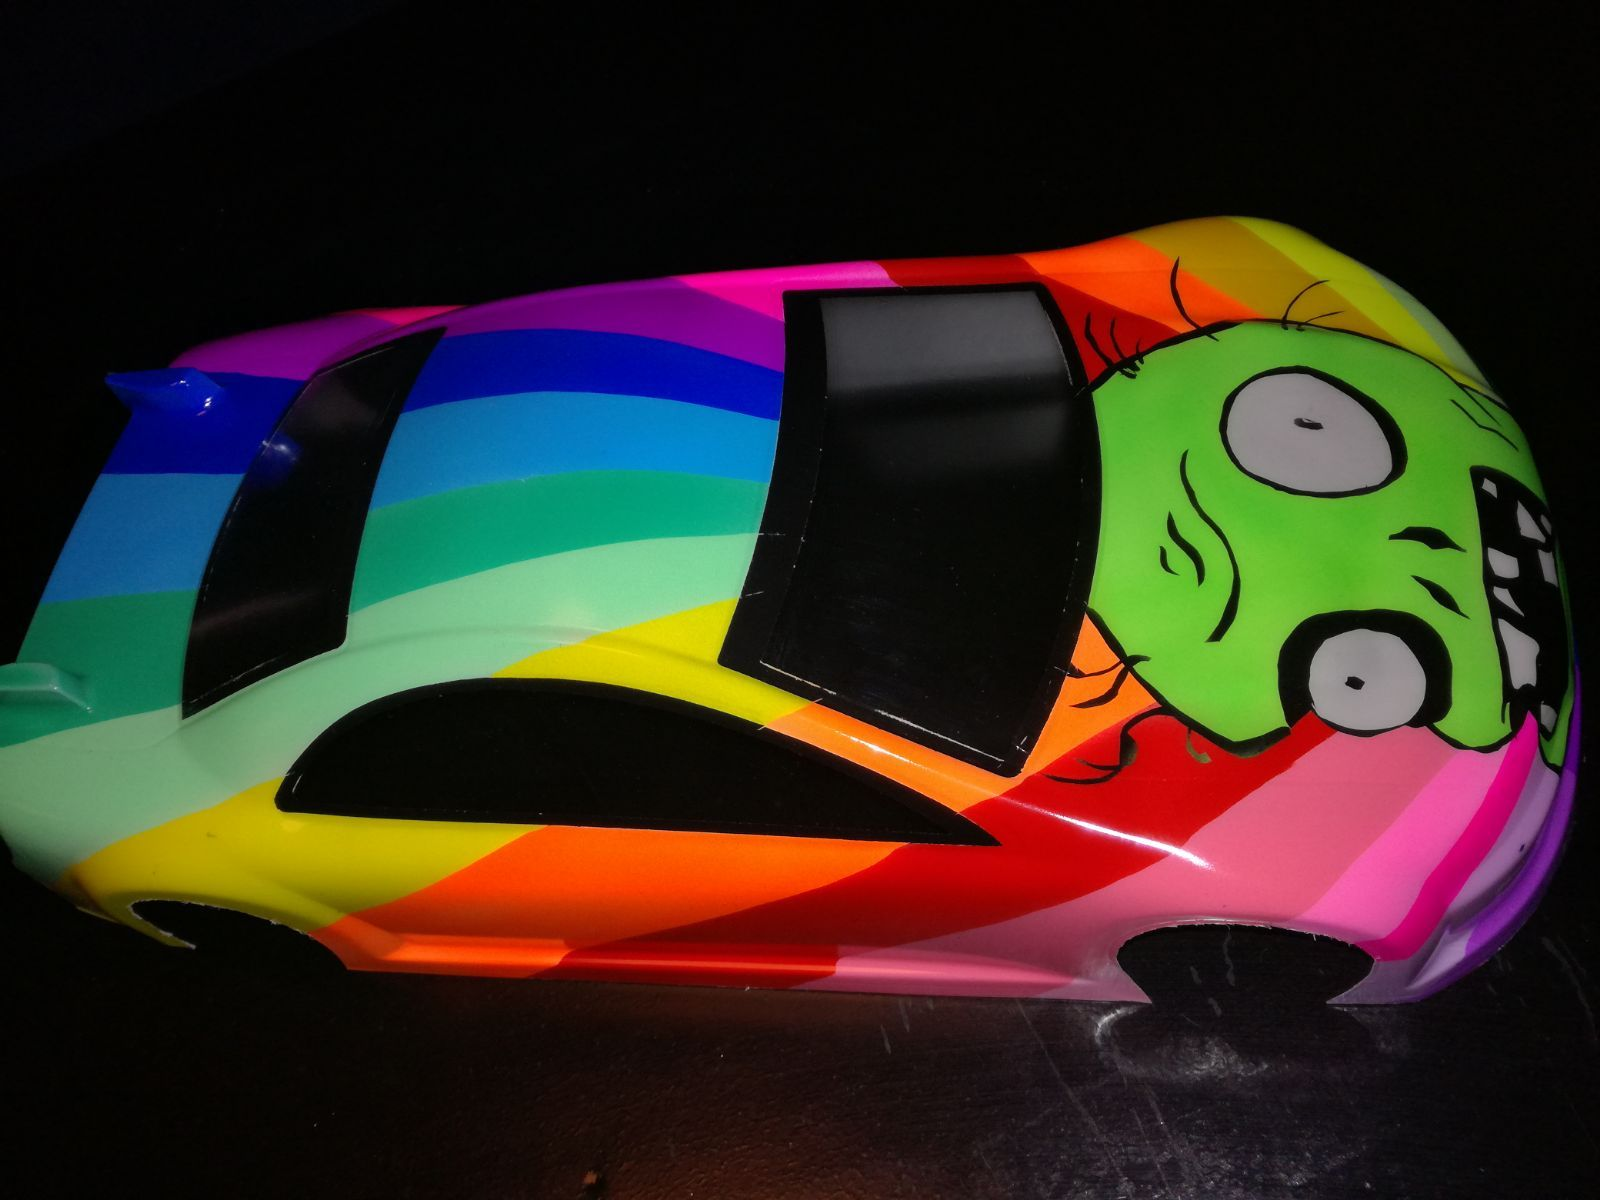 Frank Airbrush RC car paint airbrush body (With images